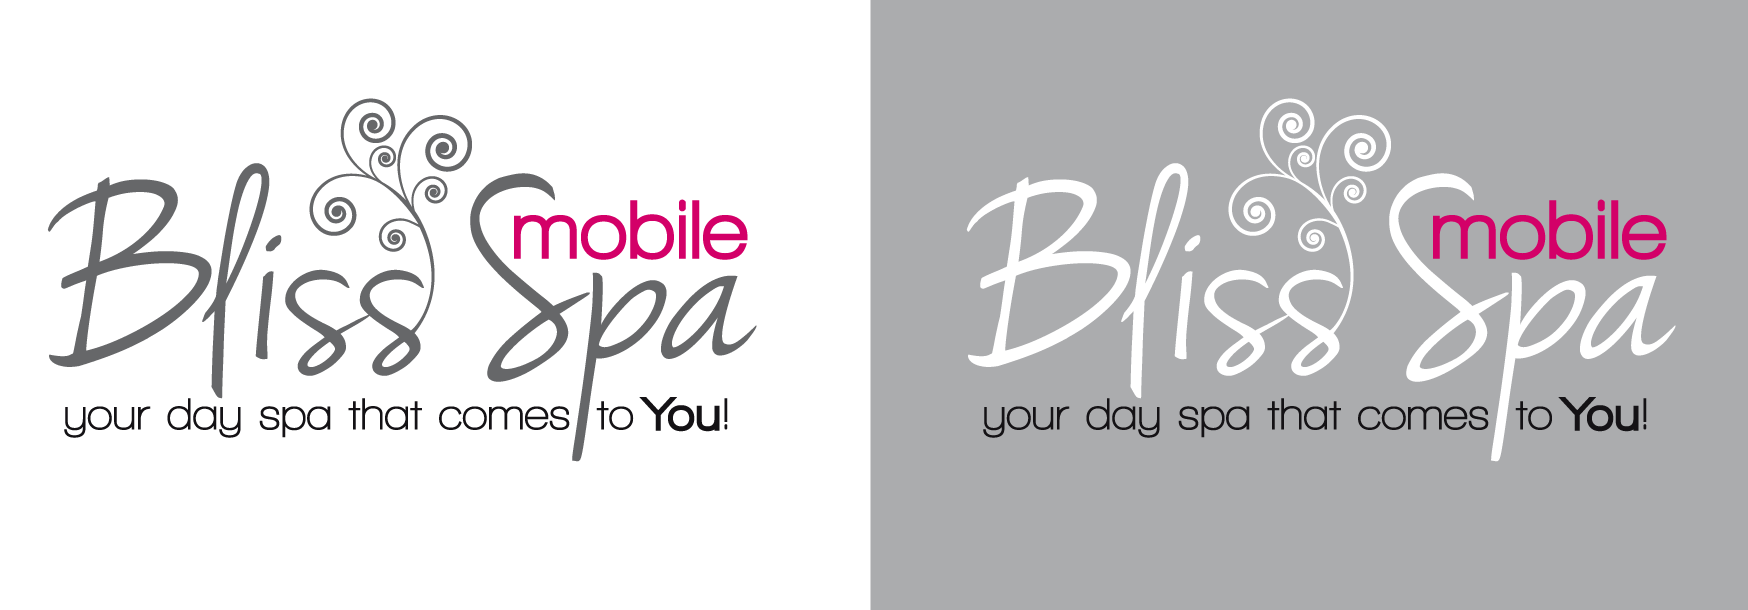 Logo Design by luna - Entry No. 51 in the Logo Design Contest New Logo Design for Bliss Spa Mobile.